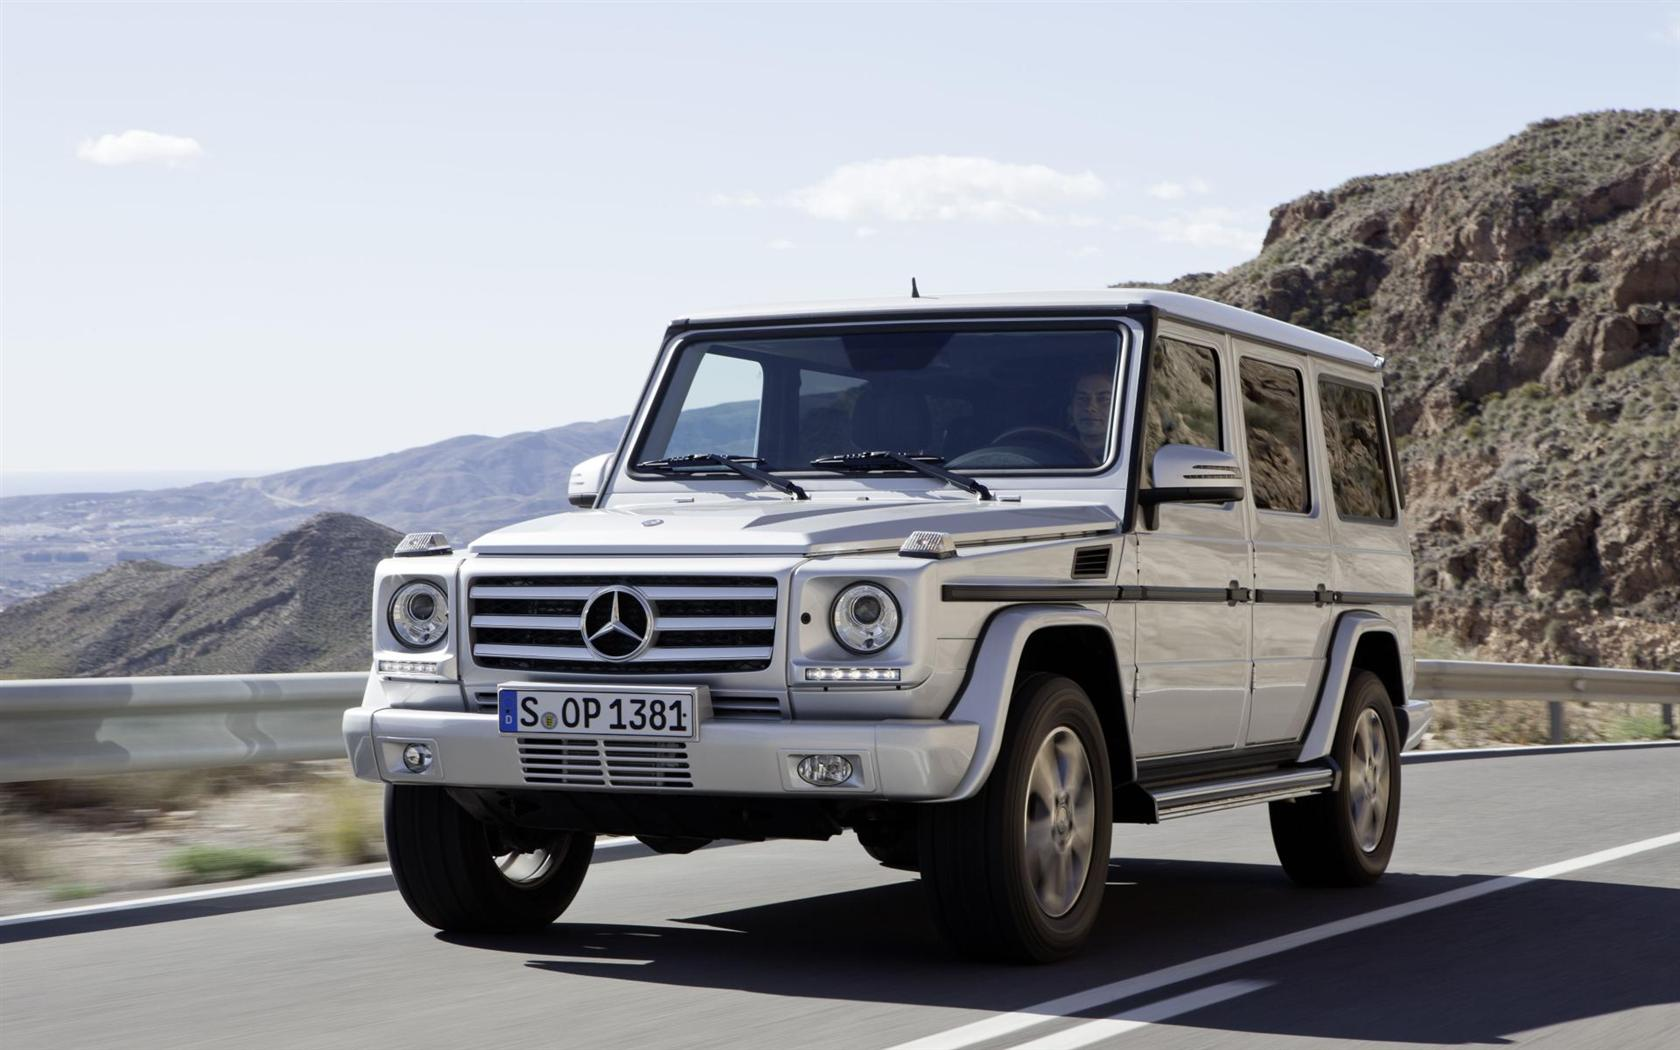 2013 Mercedes Benz G Class Image Photo 15 Of 44